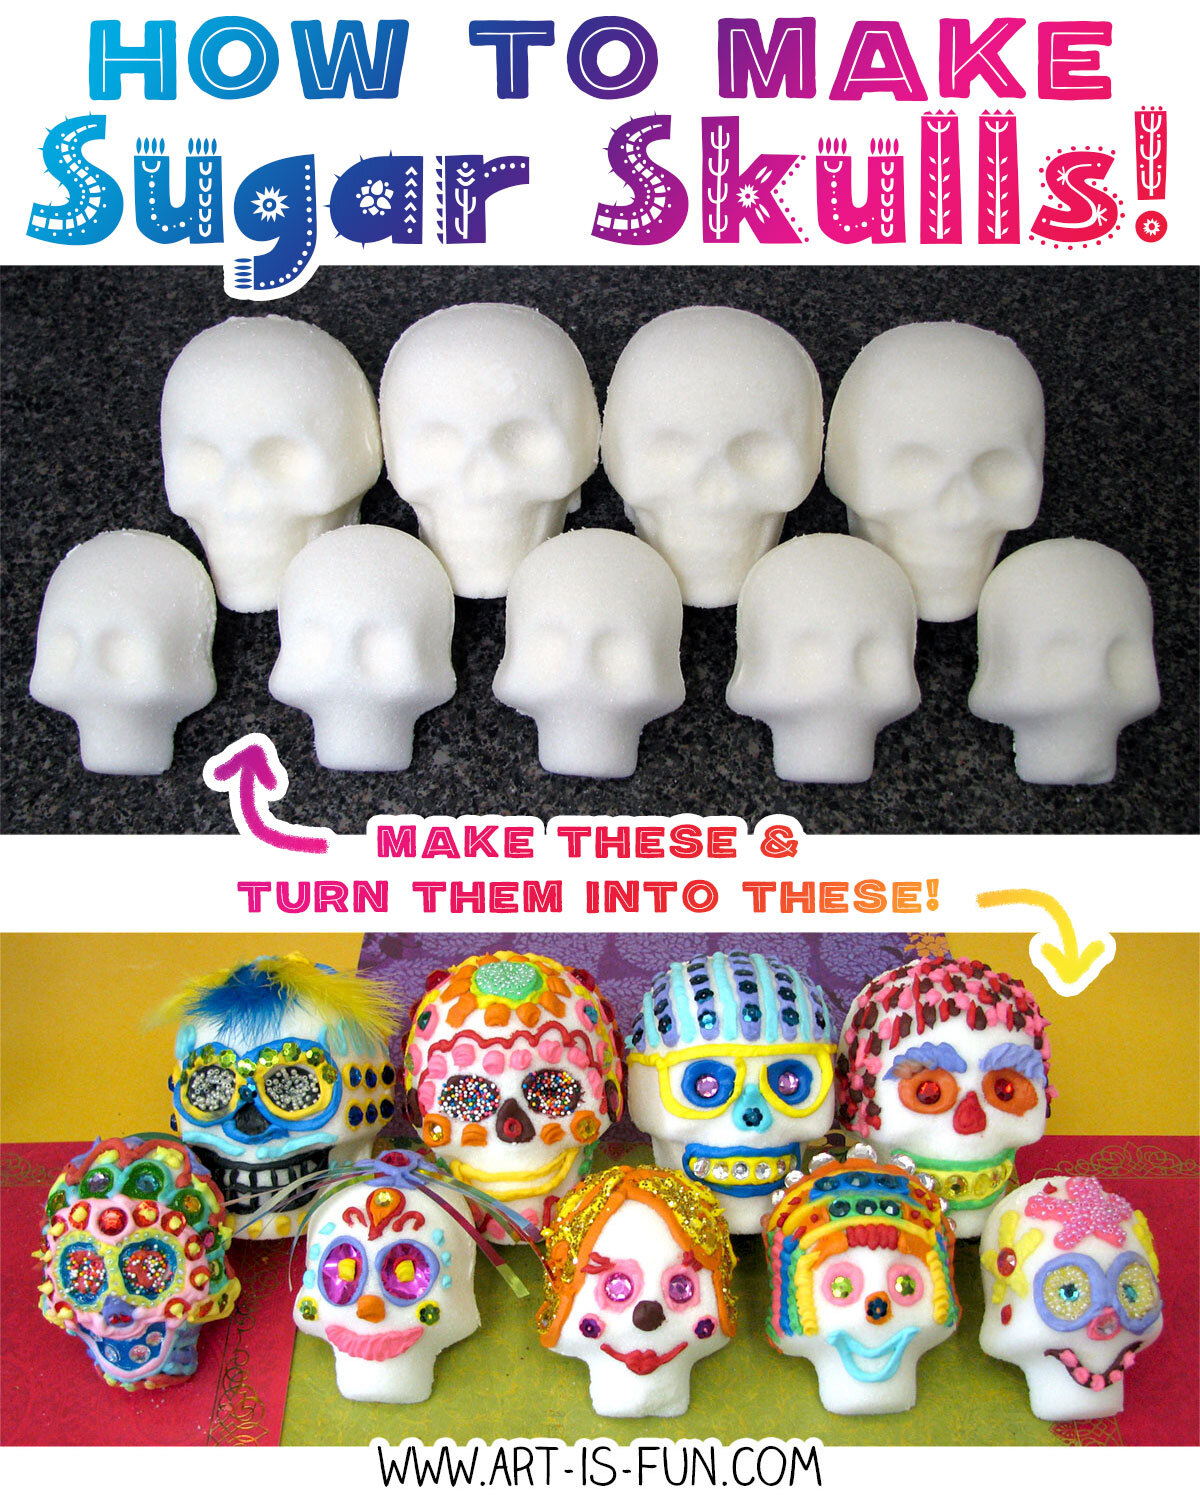 Learn how to make real Day of the Dead sugar skulls for Día de Muertos!